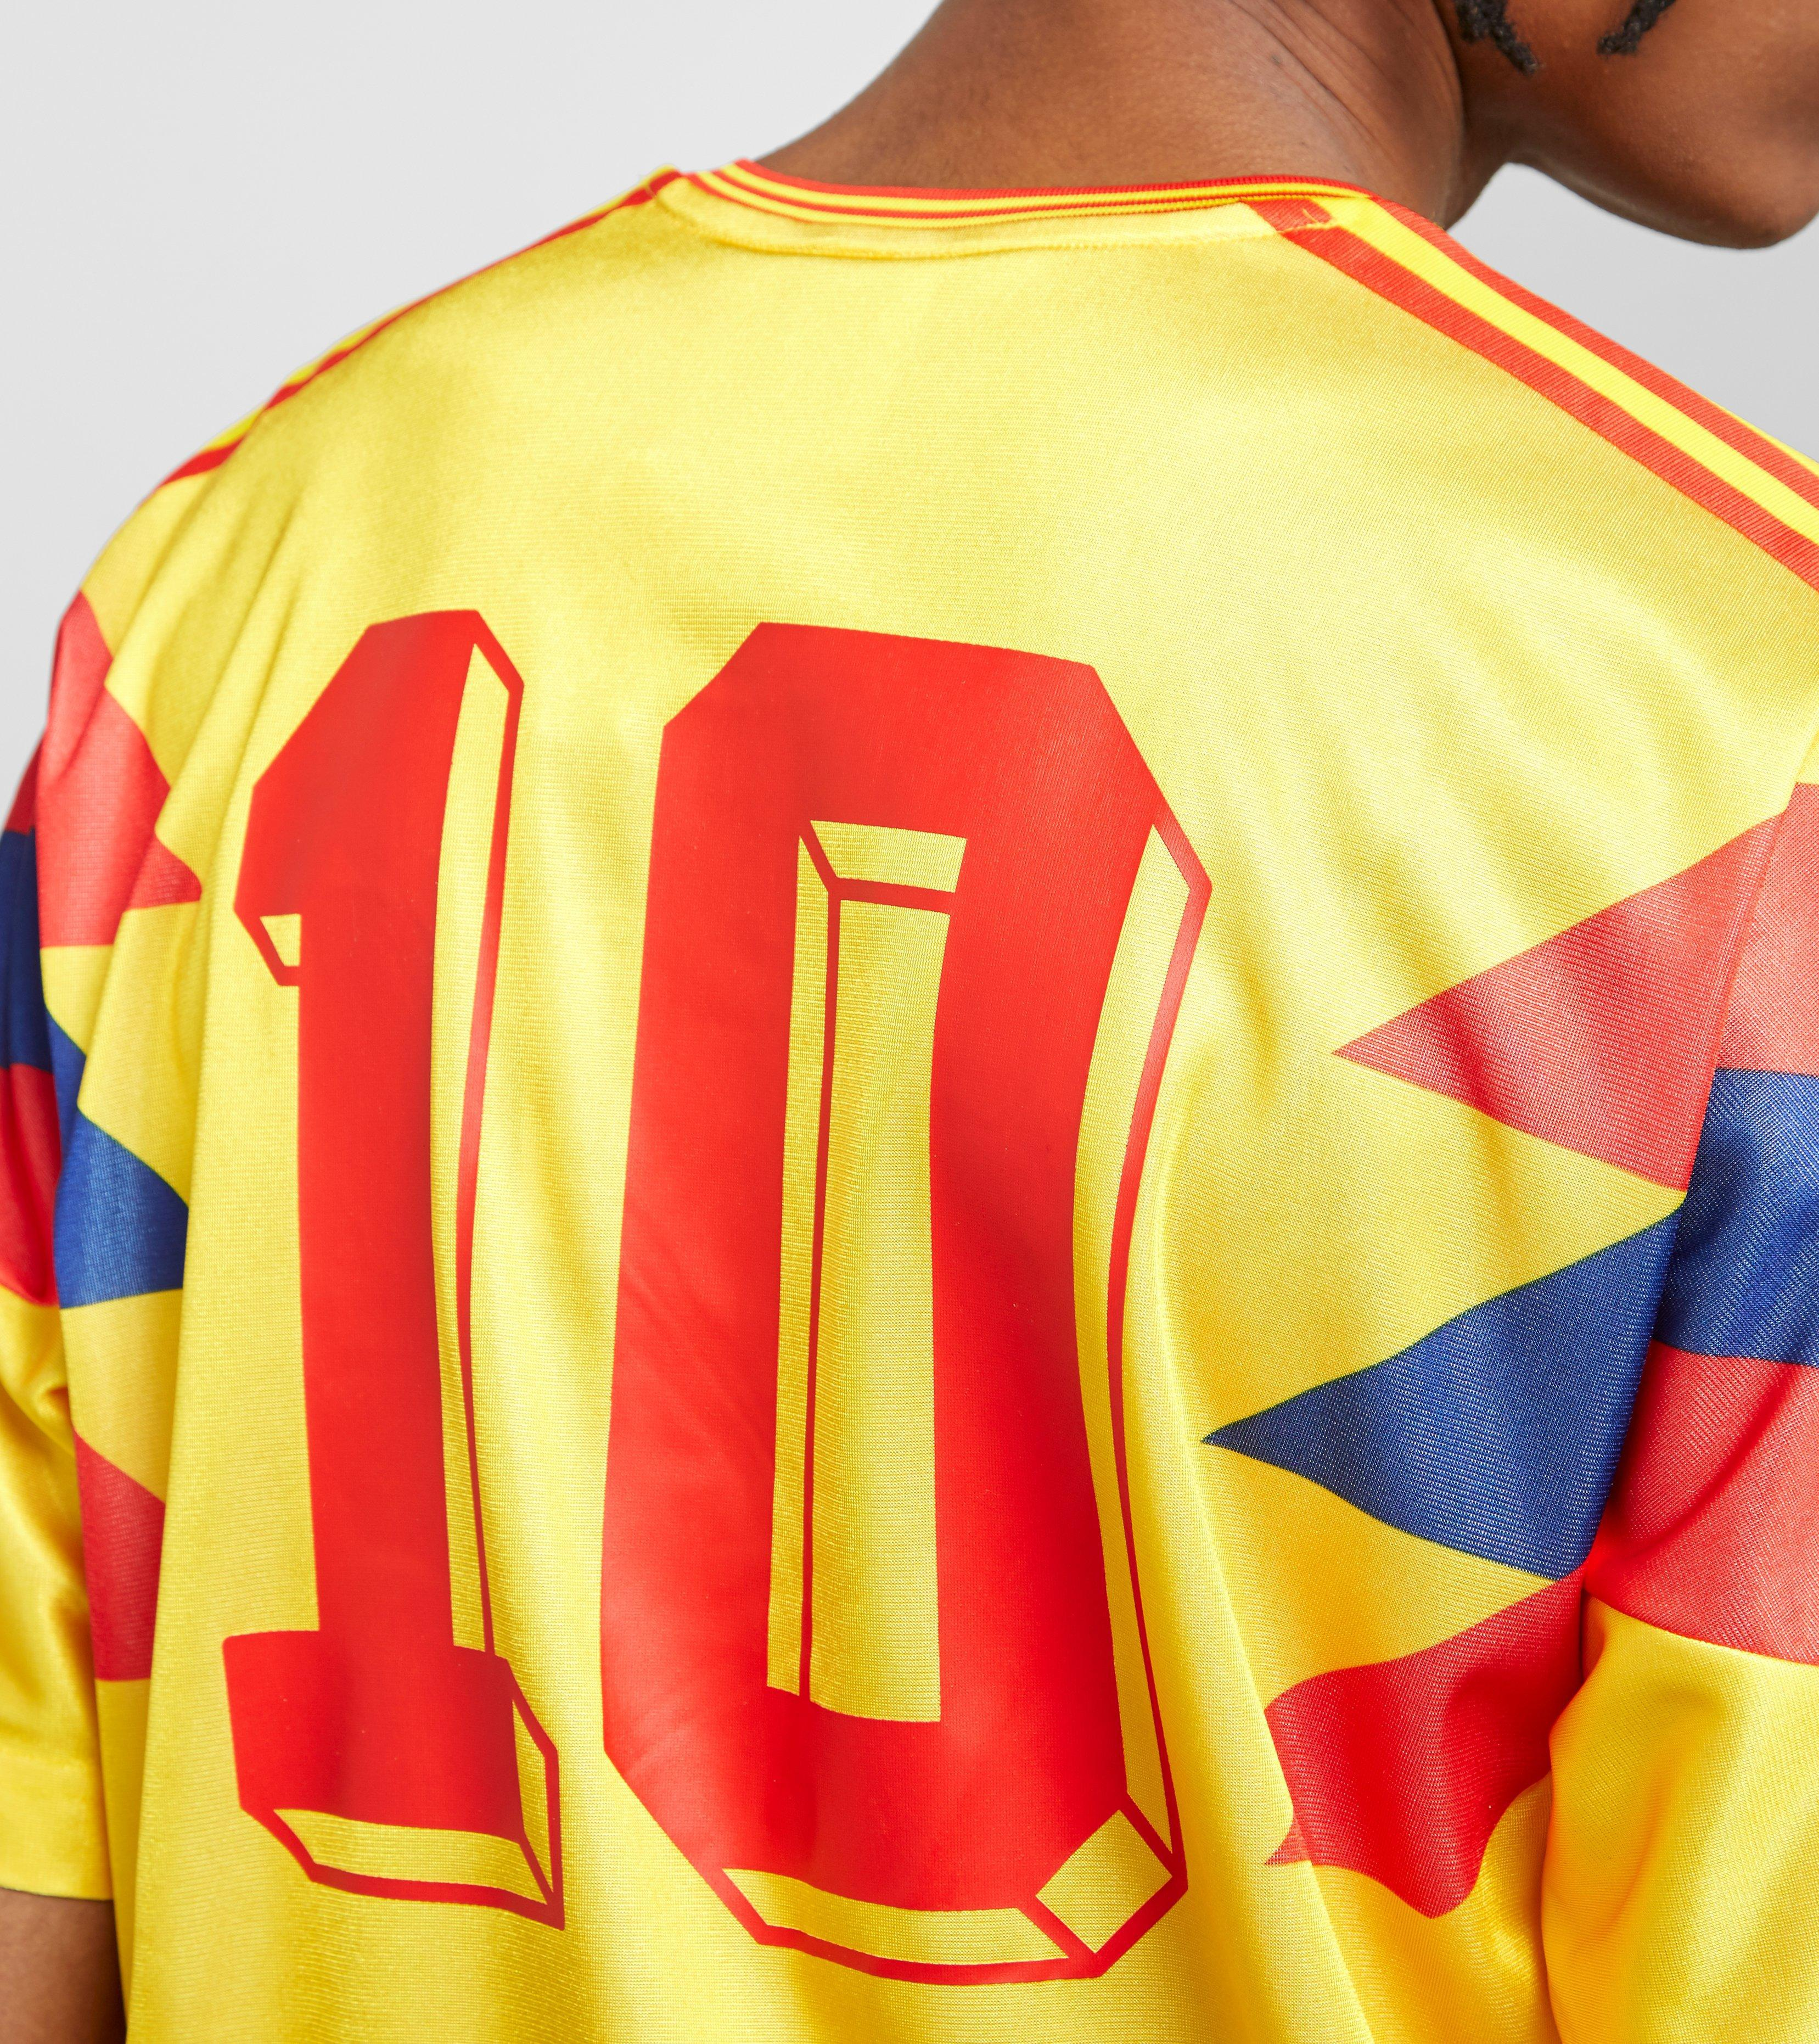 bfbc363f8 adidas Originals Colombia 1990 Football Jersey in Yellow for Men - Lyst